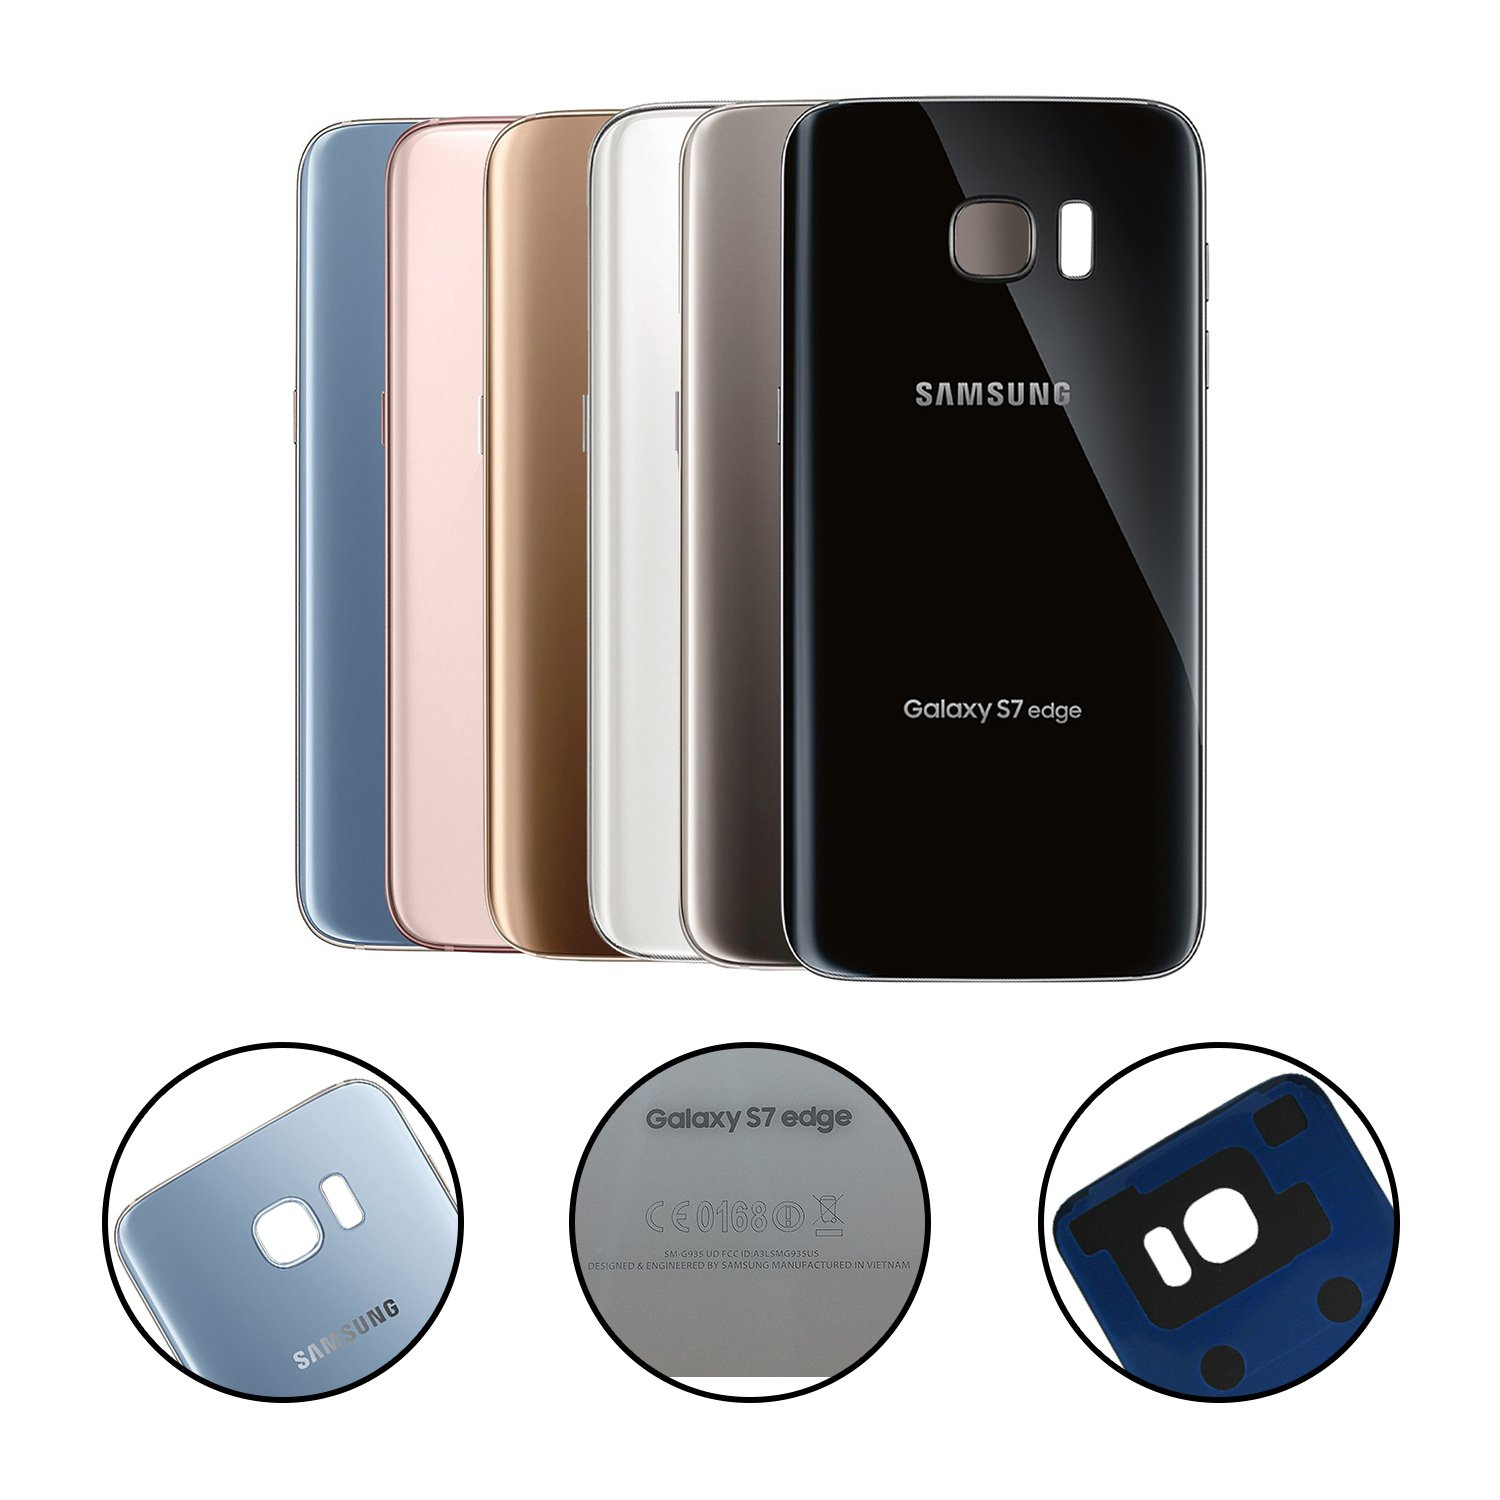 Cell4less Replacement Back Glass Cover Battery Door Samsung Galaxy S7 Edge G935 W Pre Installed Adhesive Oem All Models Carriers 2